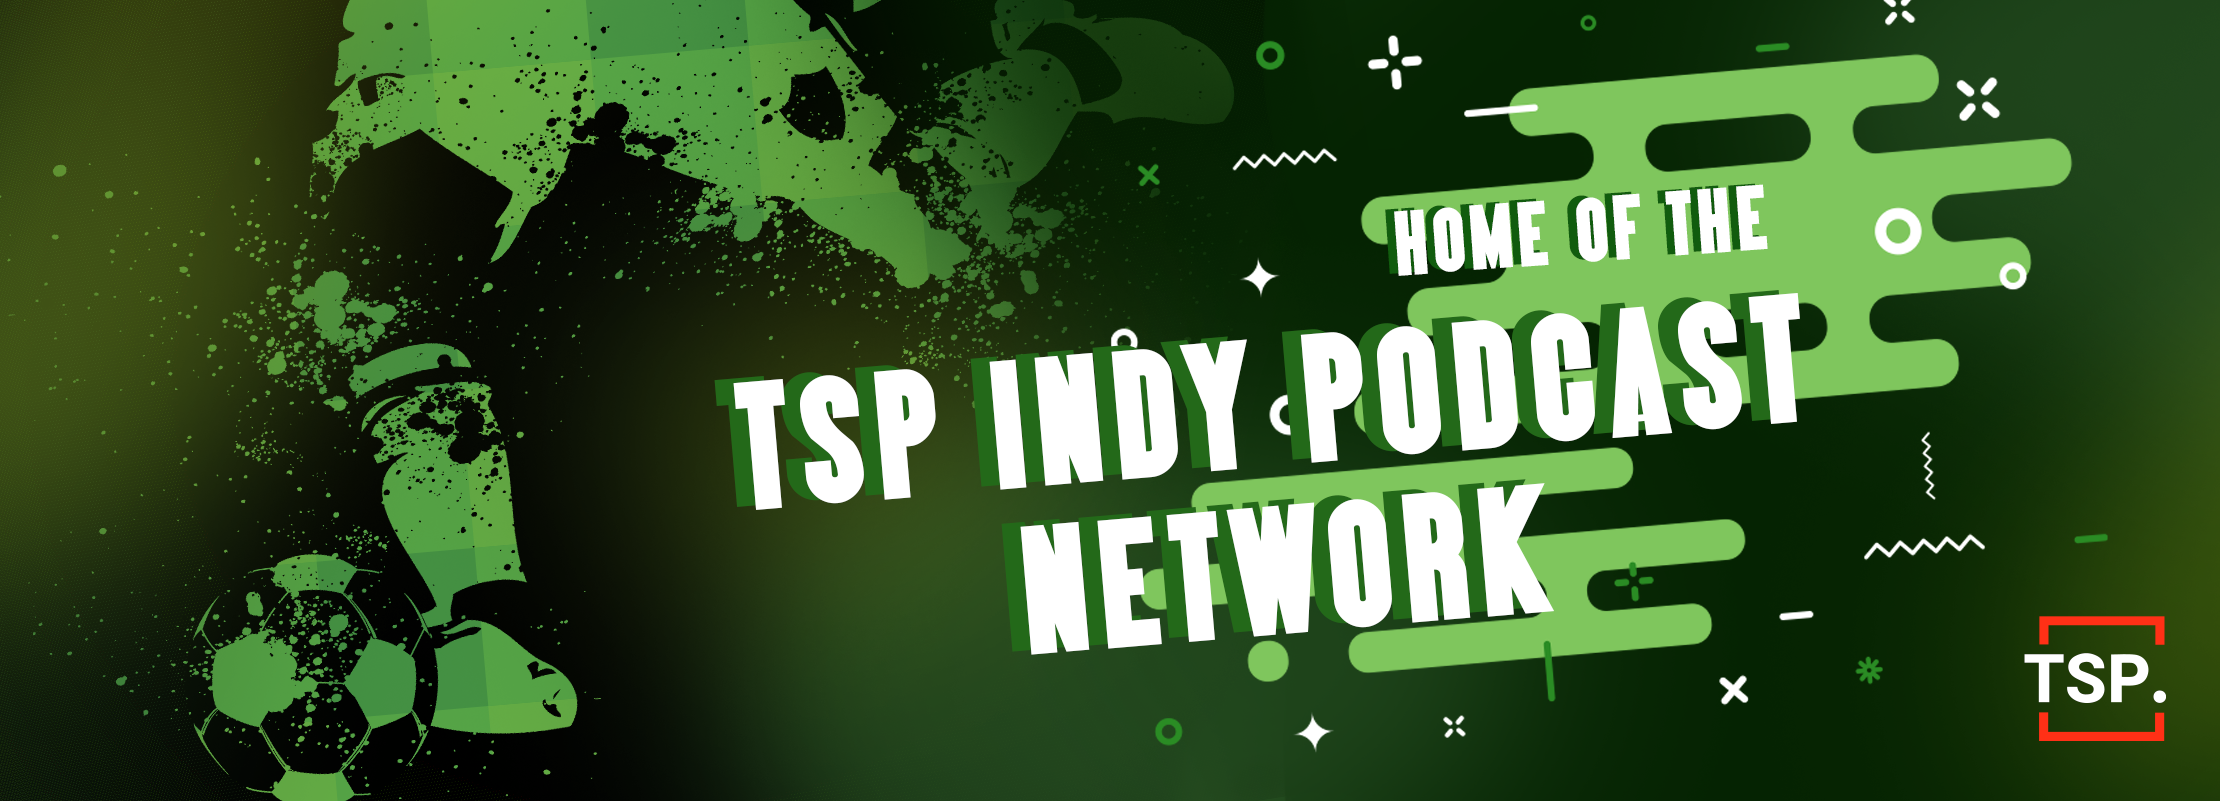 TSP Indy podcast network